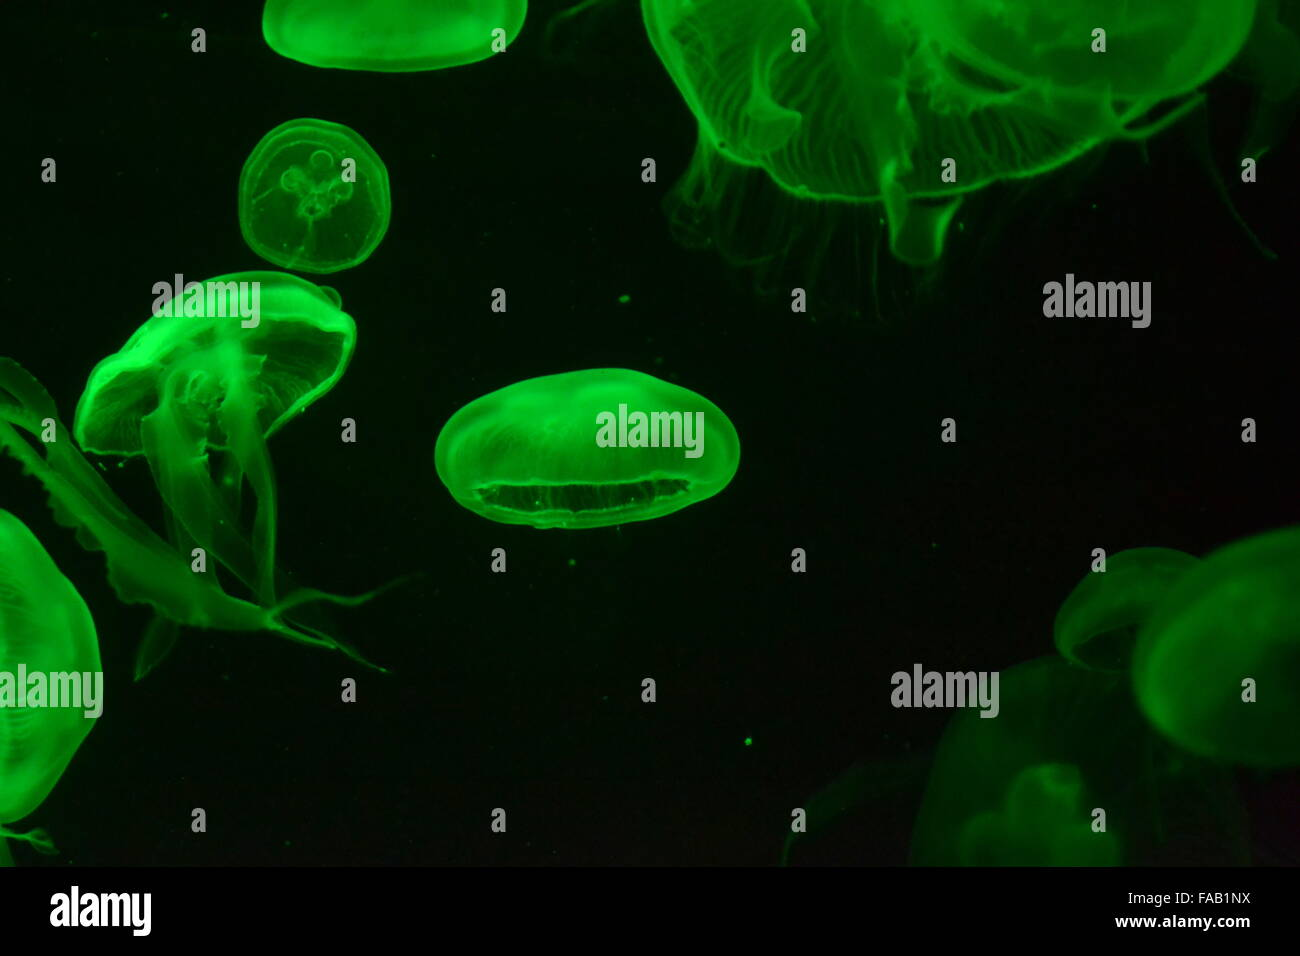 Swimming jellyfish with tendrils on green black background - Stock Image